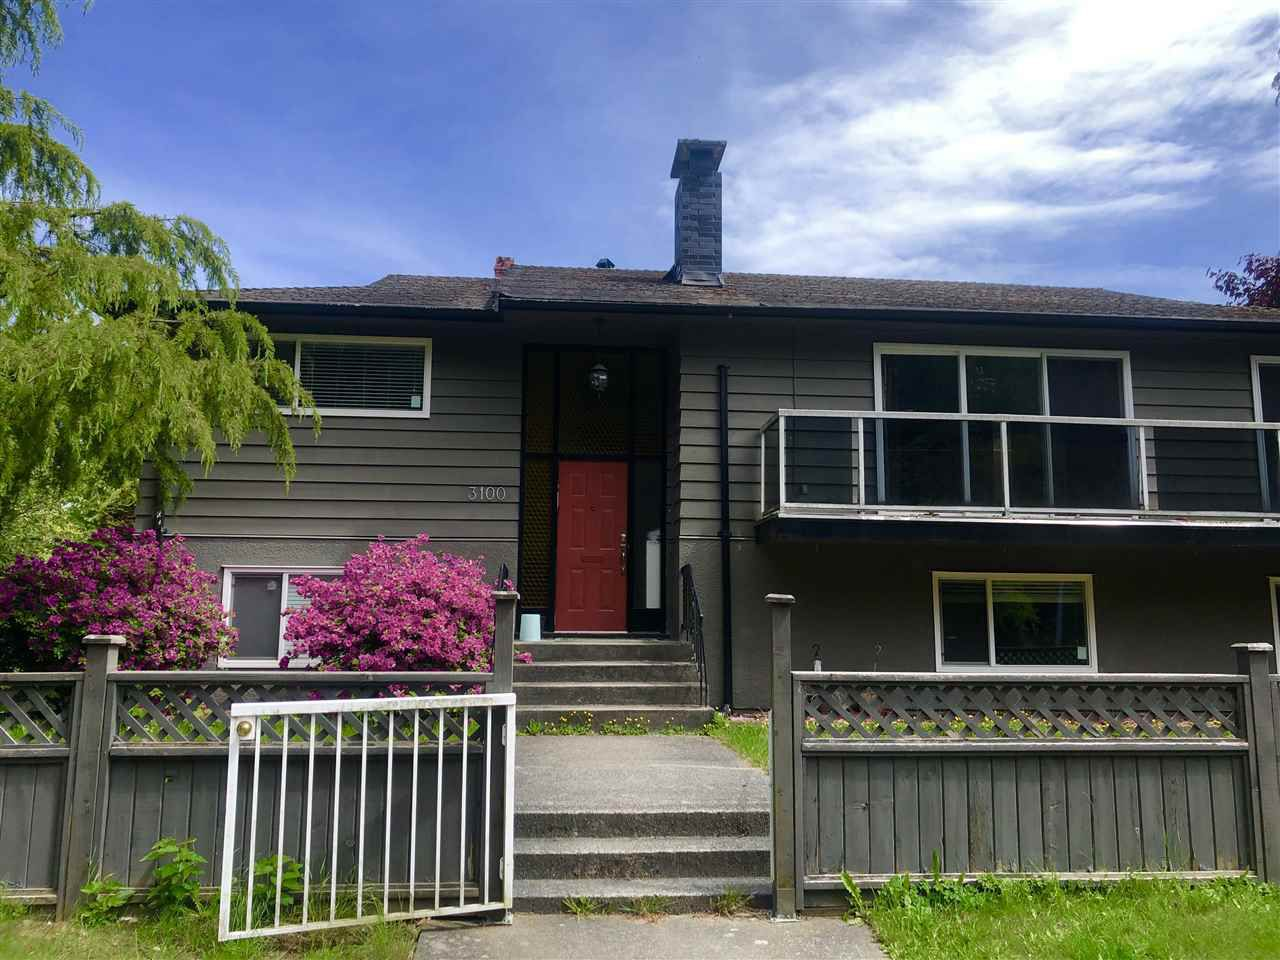 Main Photo: 3100 BLANCA Street in Vancouver: Point Grey House for sale (Vancouver West)  : MLS®# R2363651